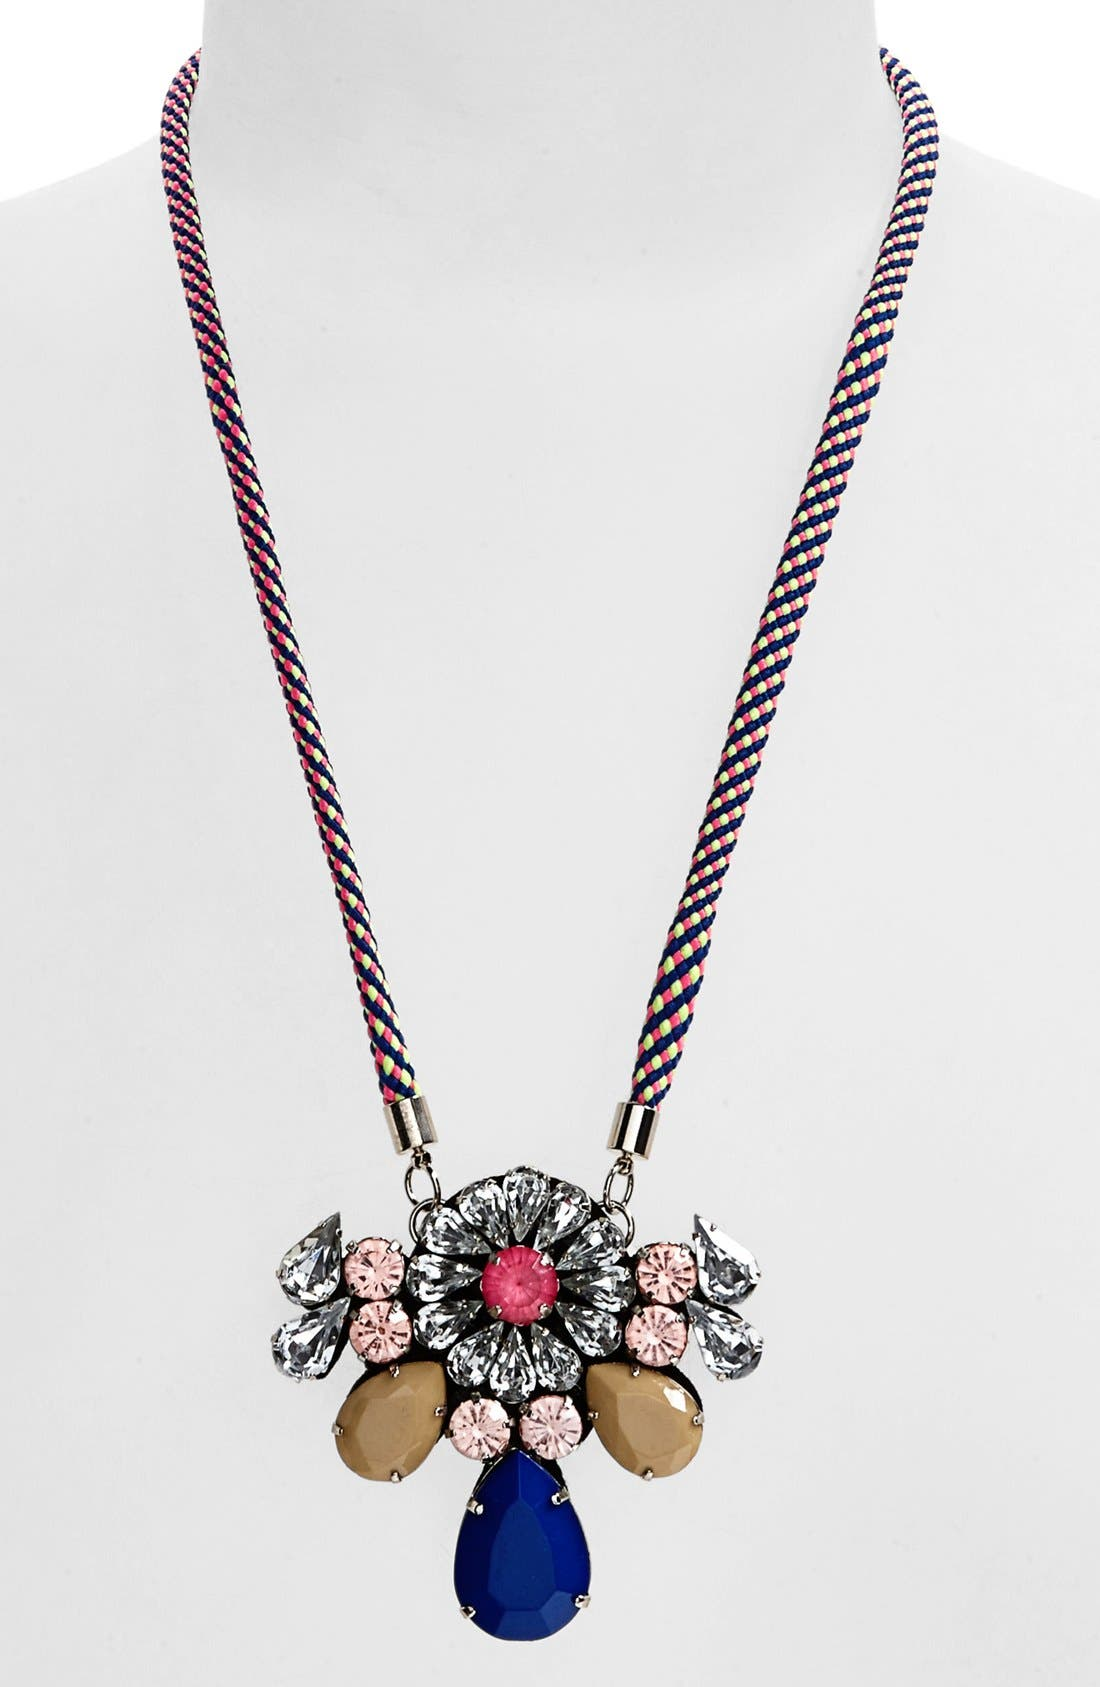 Alternate Image 1 Selected - Cara Couture 'Dandy' Statement Necklace